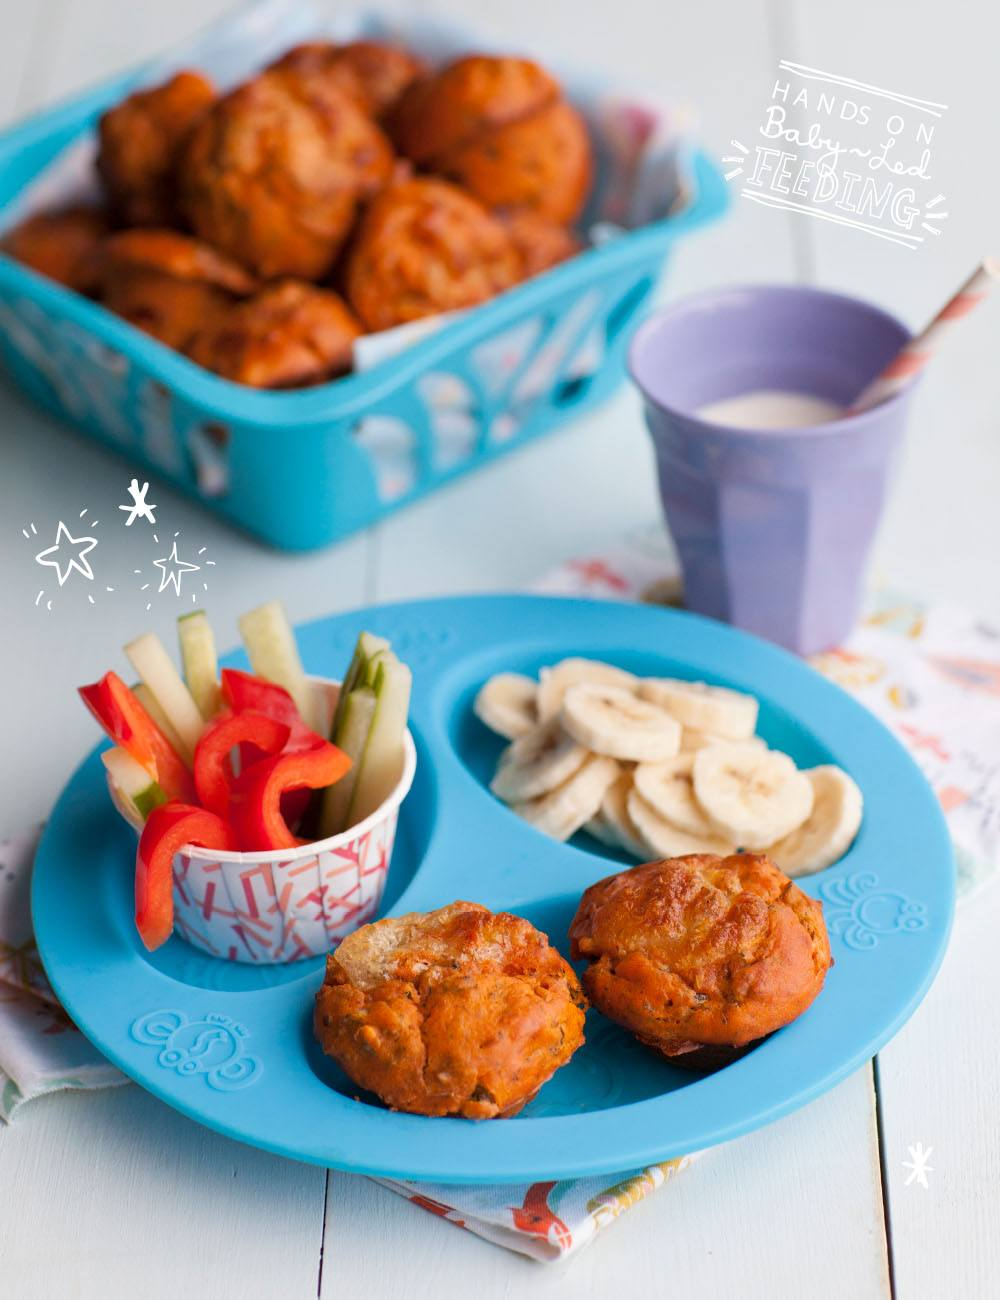 The-Pizza-Muffin-Baby-Led-Feeding-baby-led-weaning-muffins